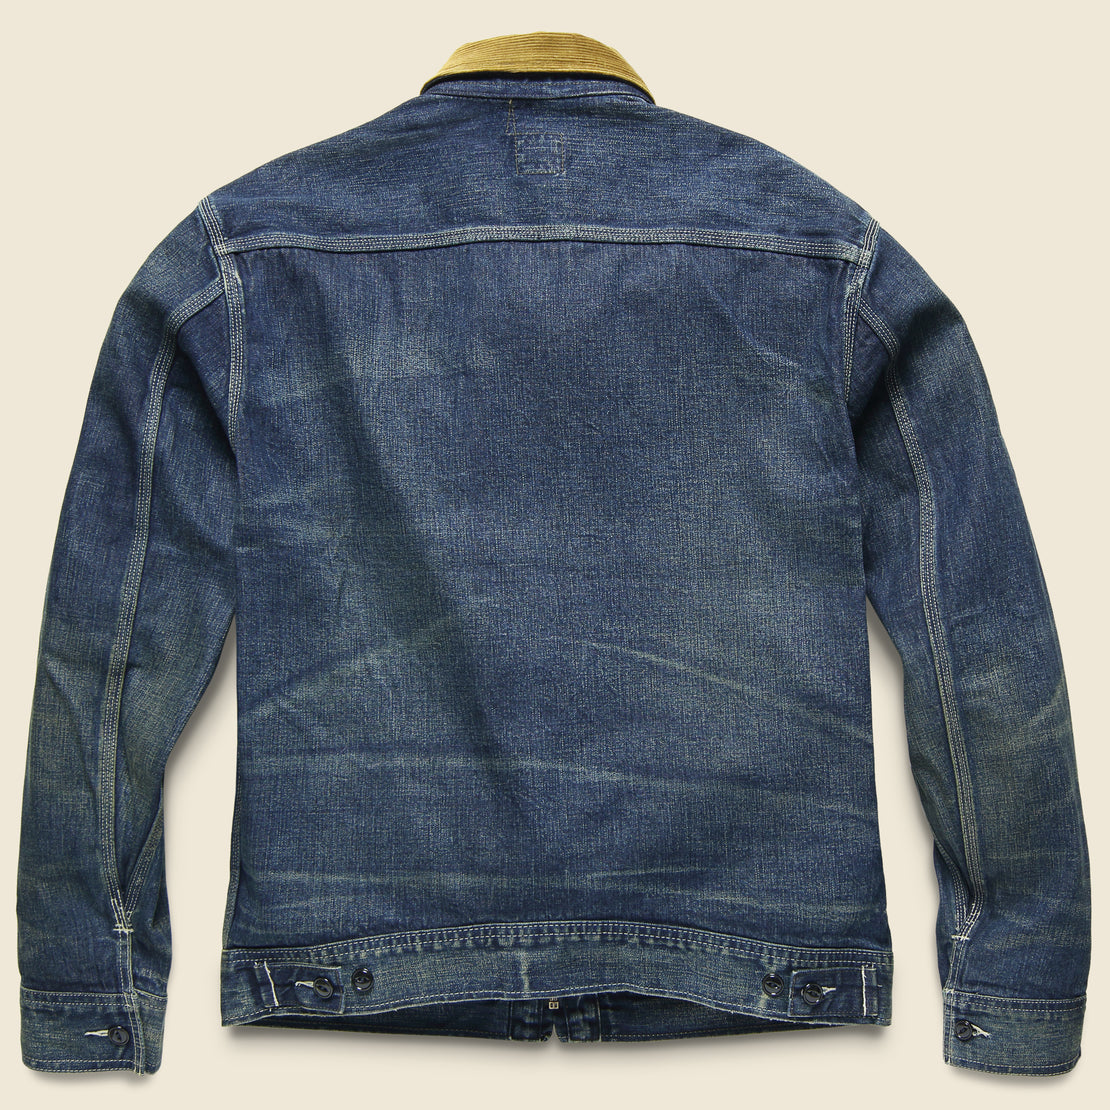 Corduroy-Collar Denim Jacket - Haysville Wash